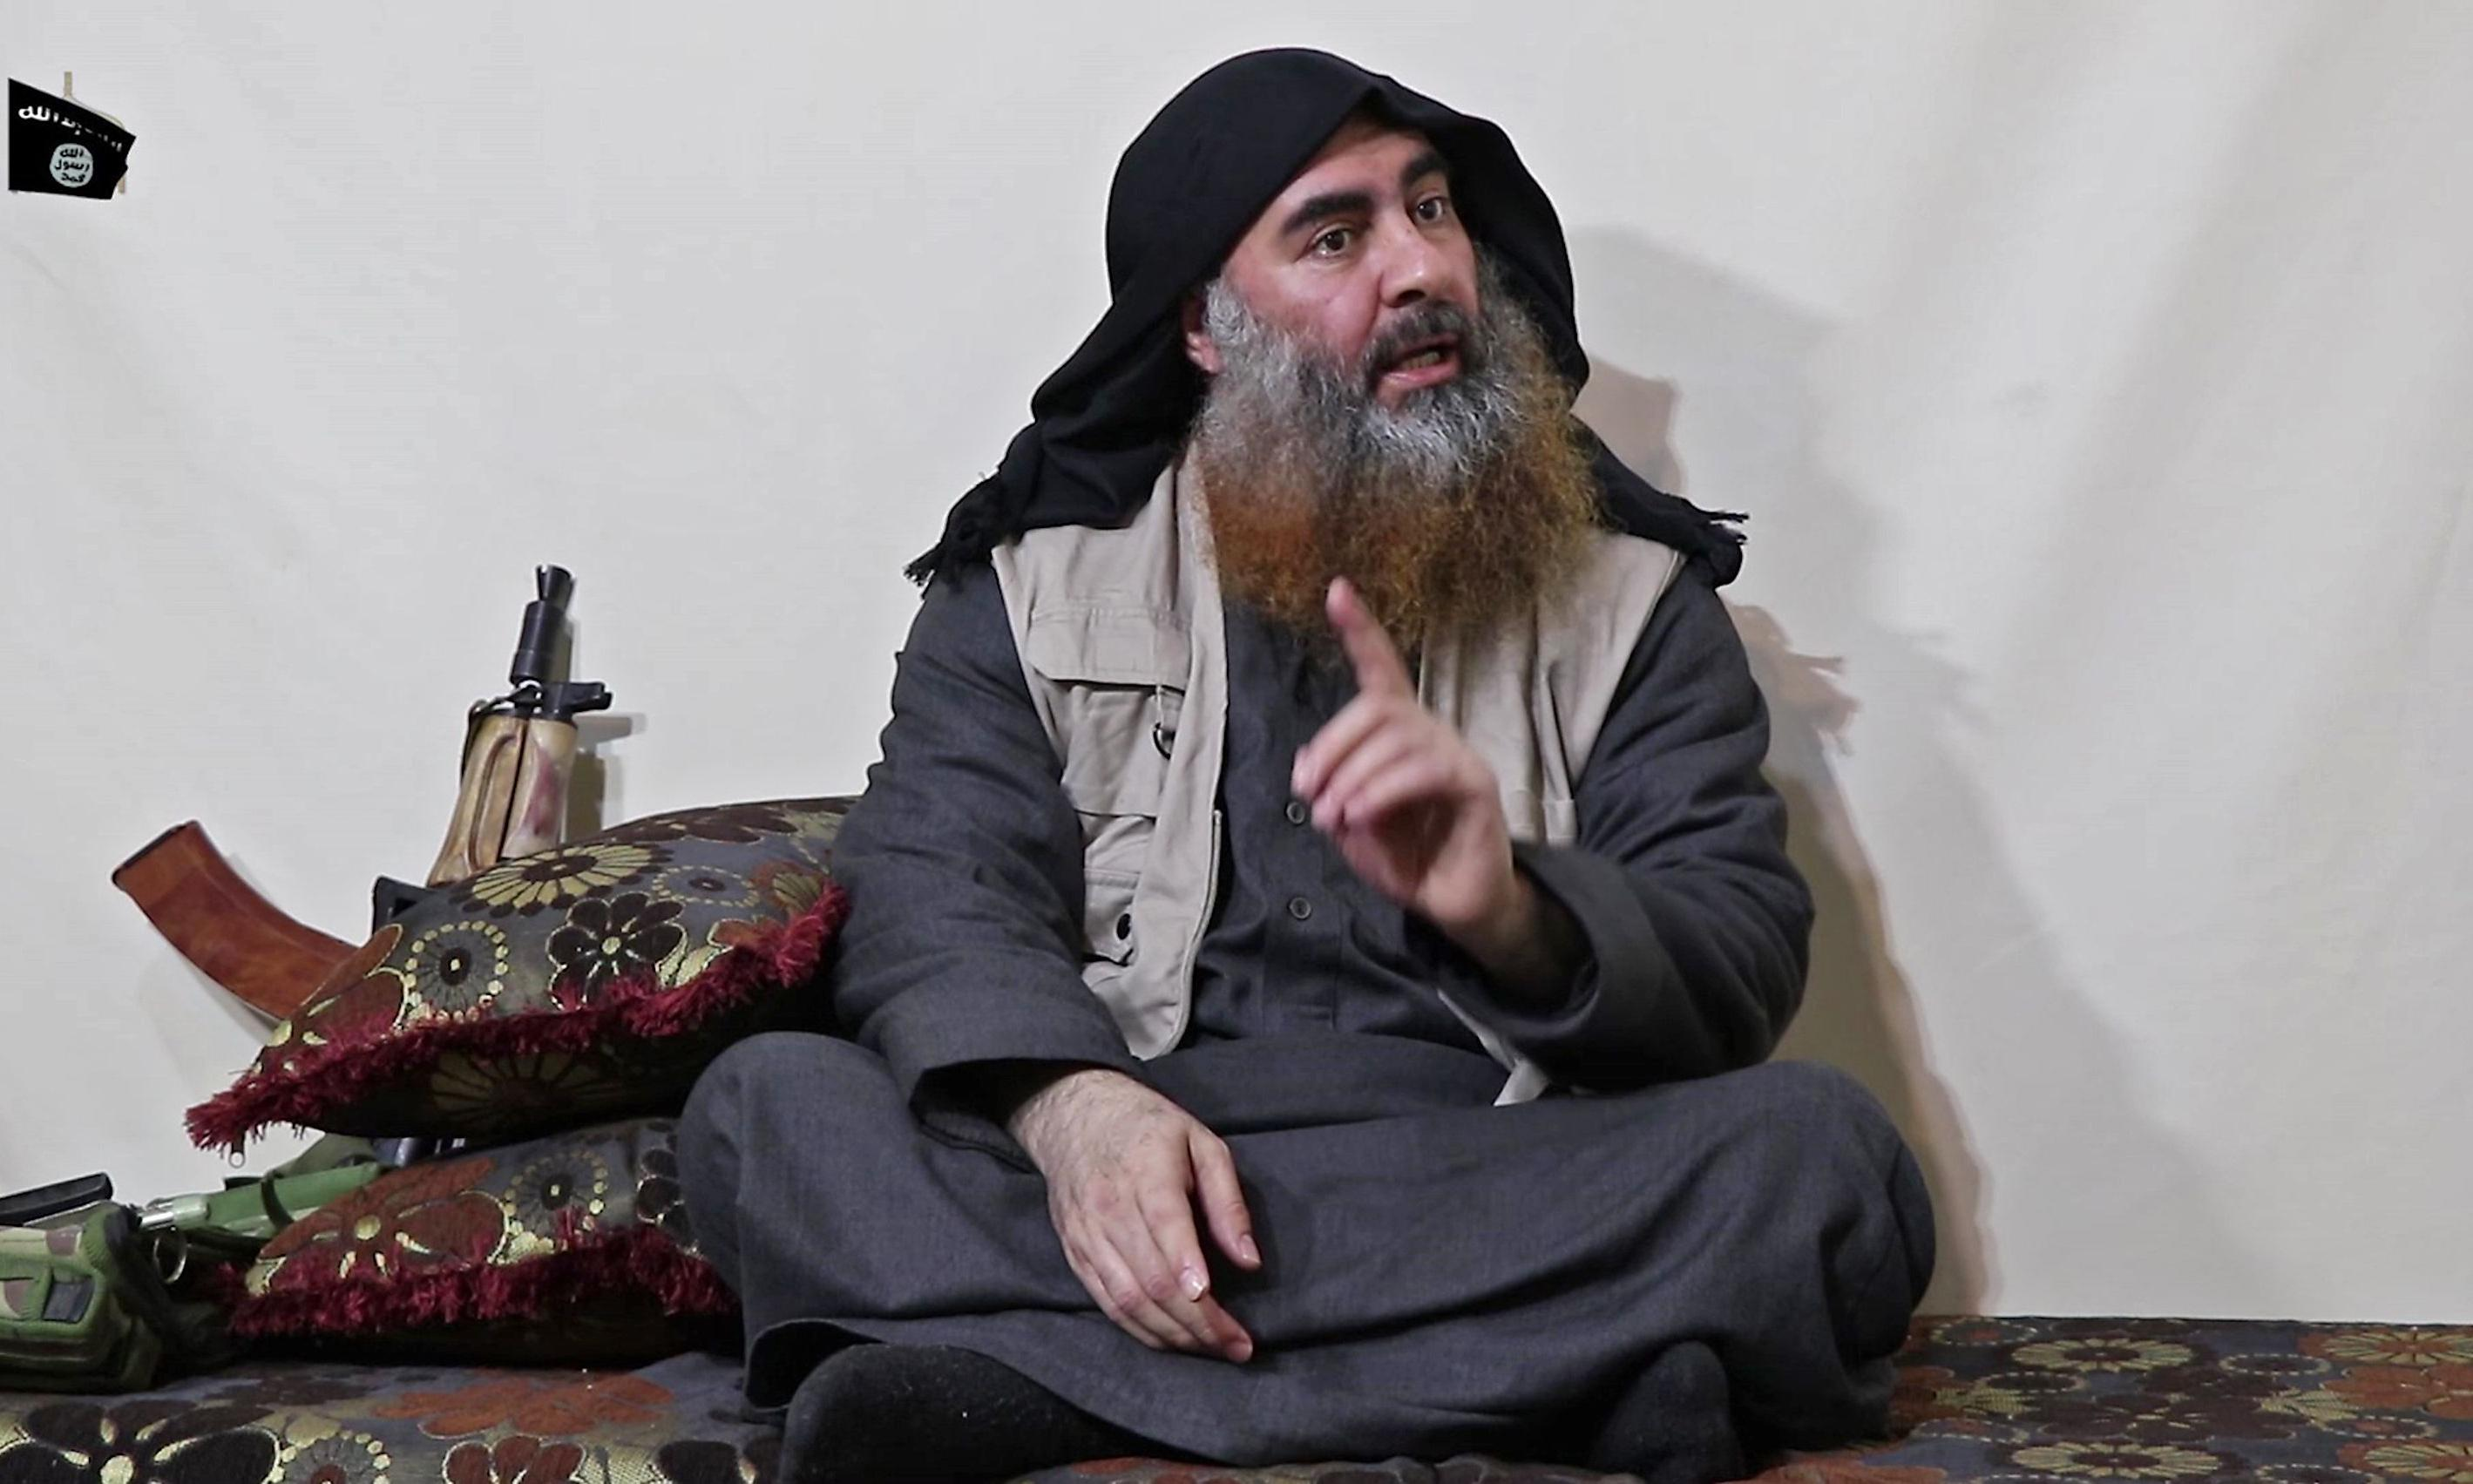 Isis leader purportedly urges members to free detainees from camps